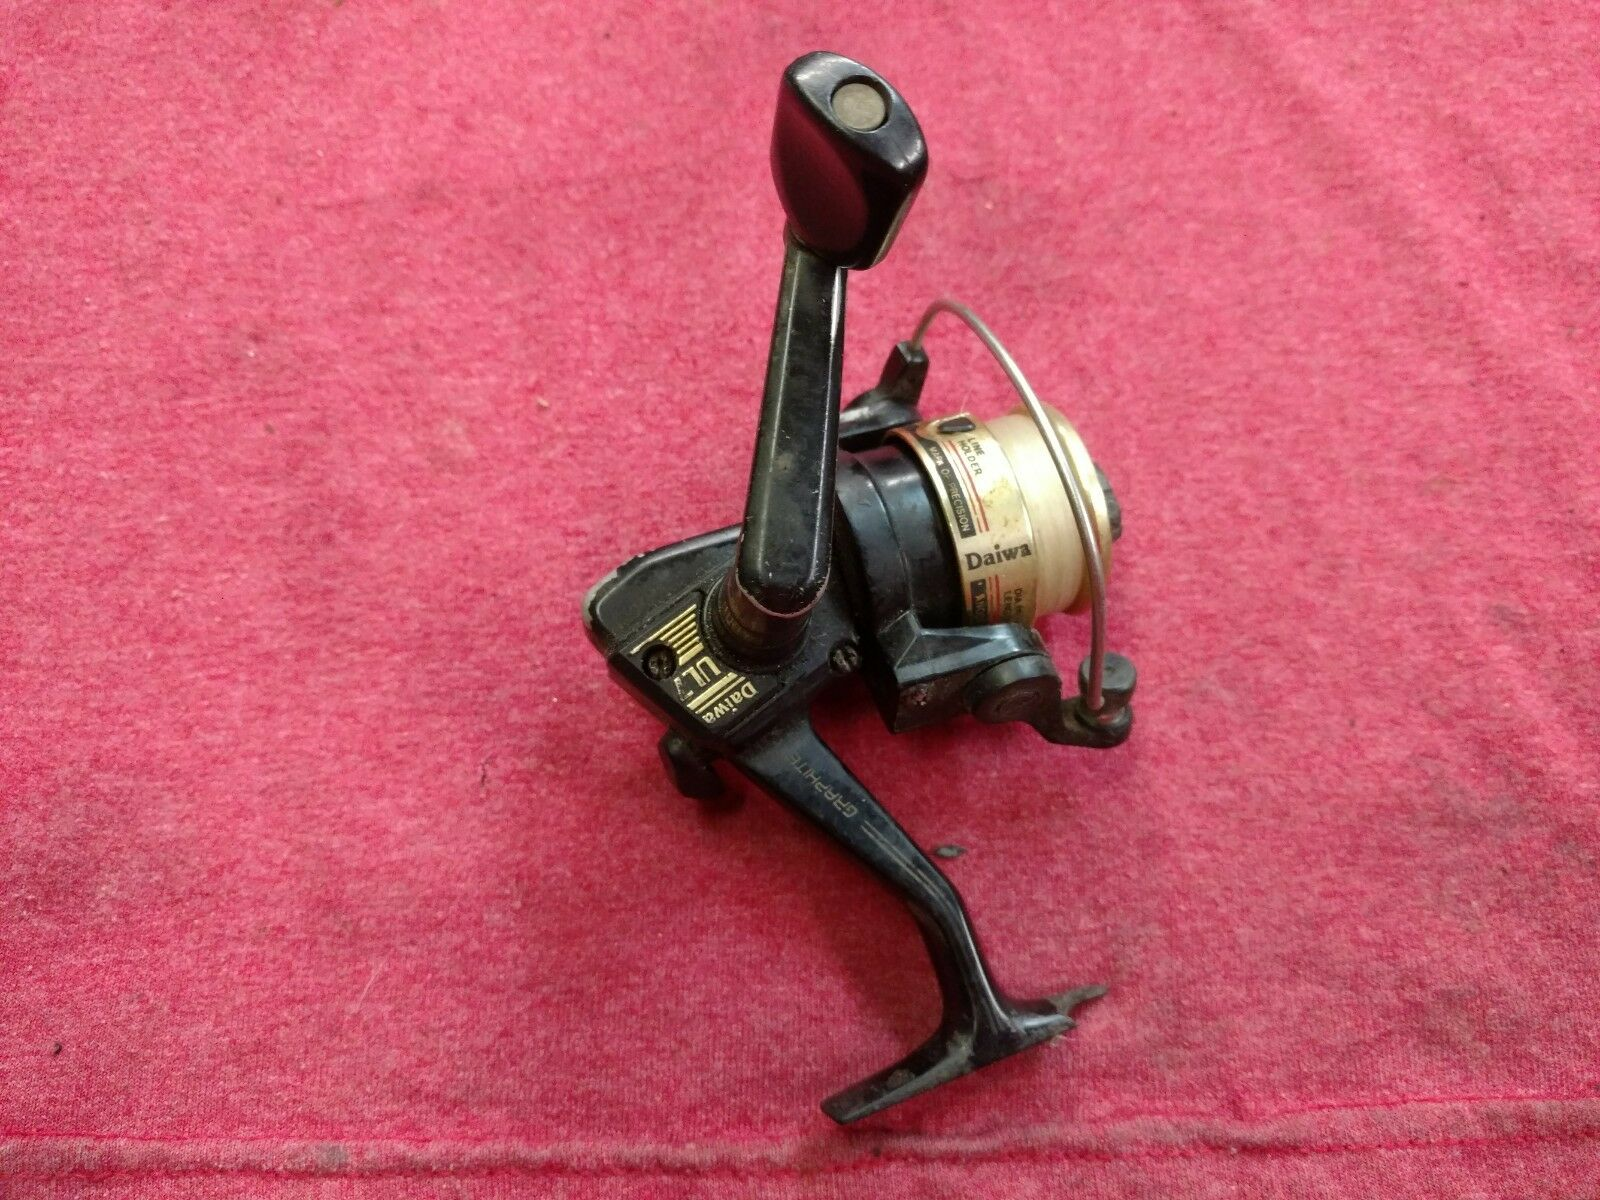 DAIWA UL7 UL 7 ULTRALIGHT SPINNING FISHING REEL made in Taiwan